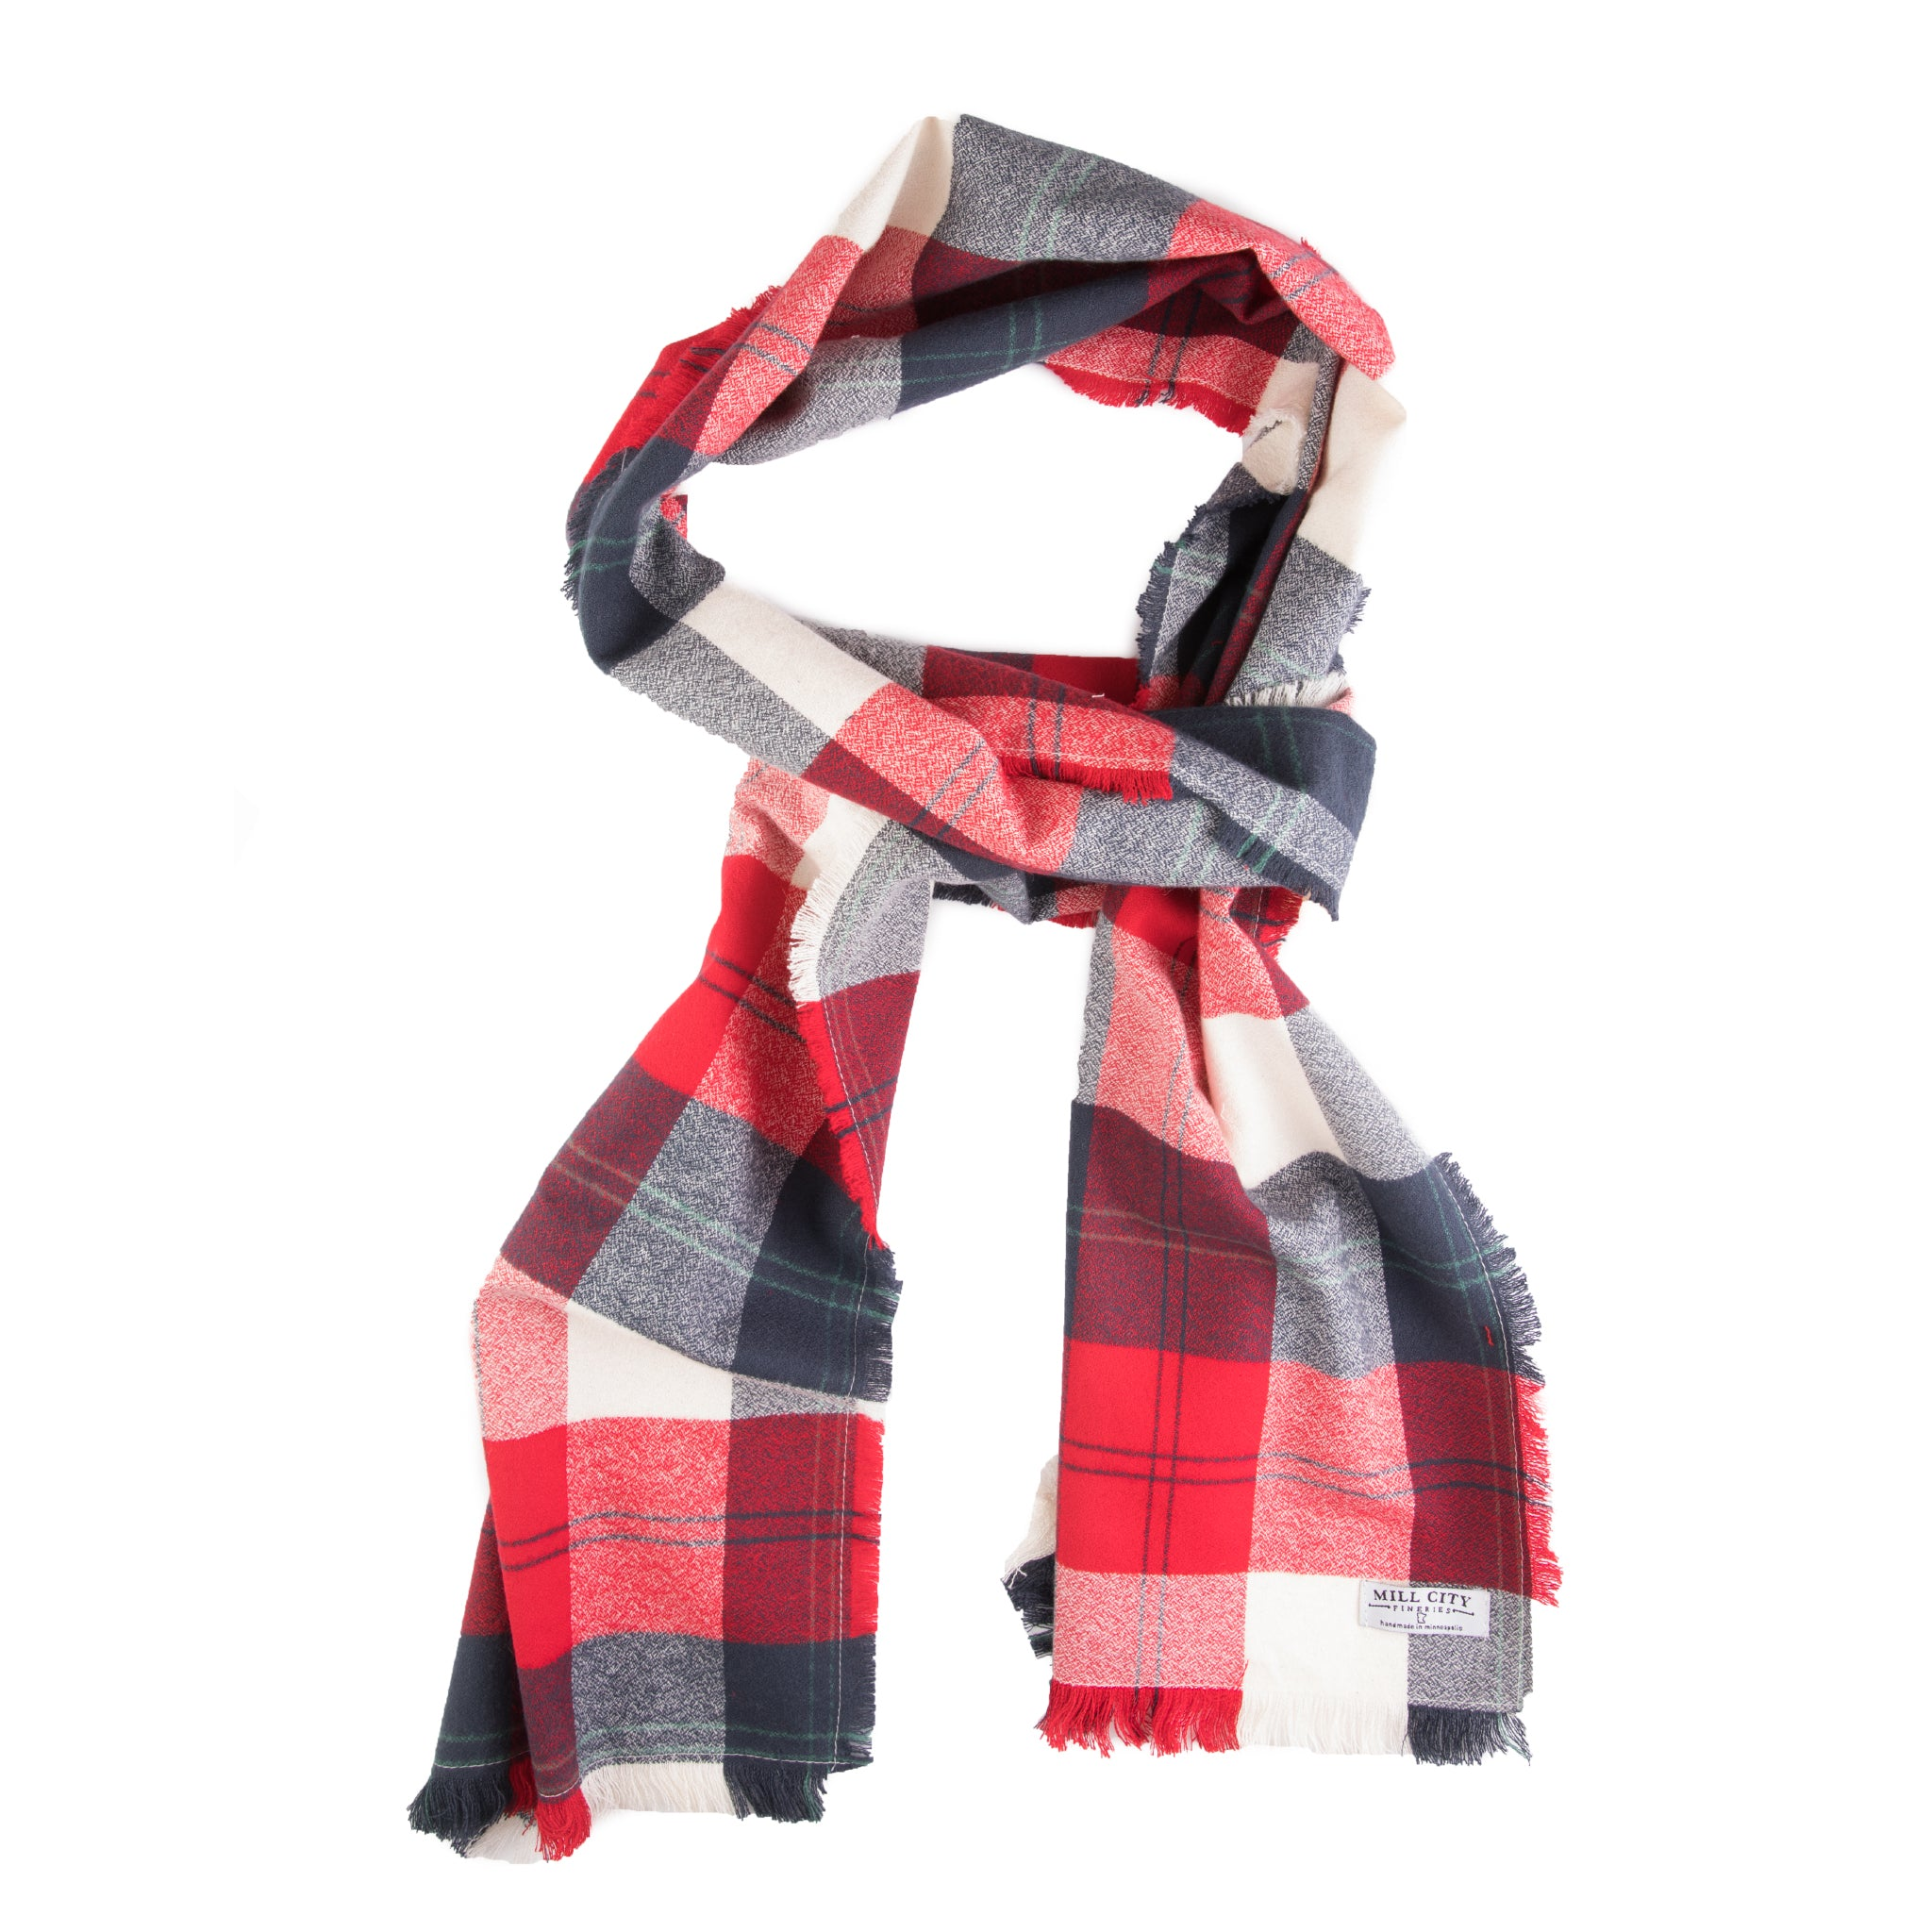 Valley Forge Plaid Flannel Scarf